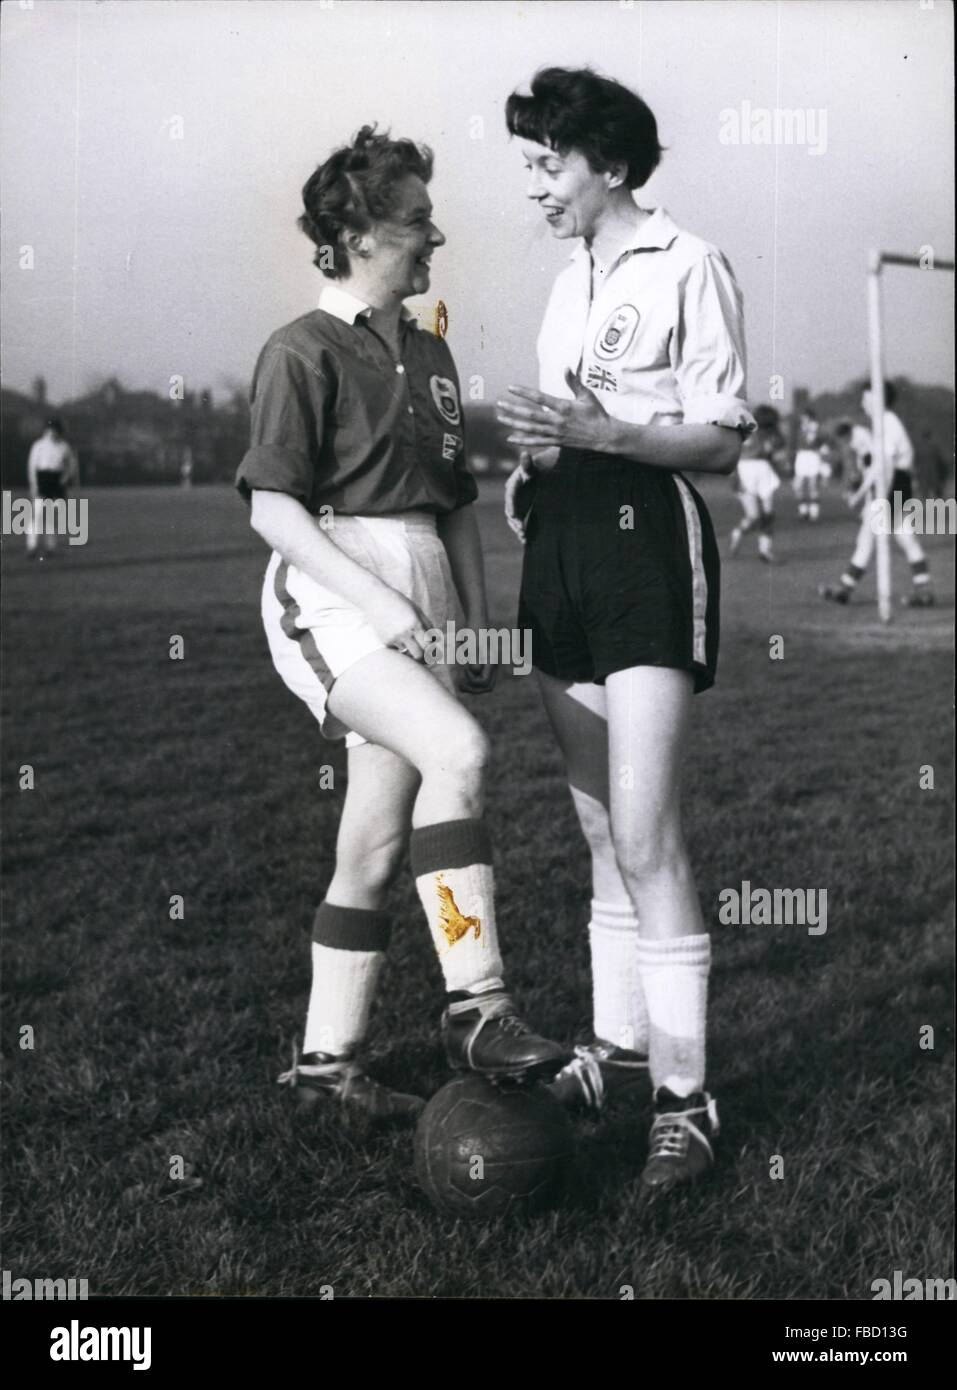 1959 - The two captains of the team: Doris Ashley on the left and Margaret Griffiths. © Keystone Pictures USA/ZUMAPRESS.com/Alamy Stock Photo